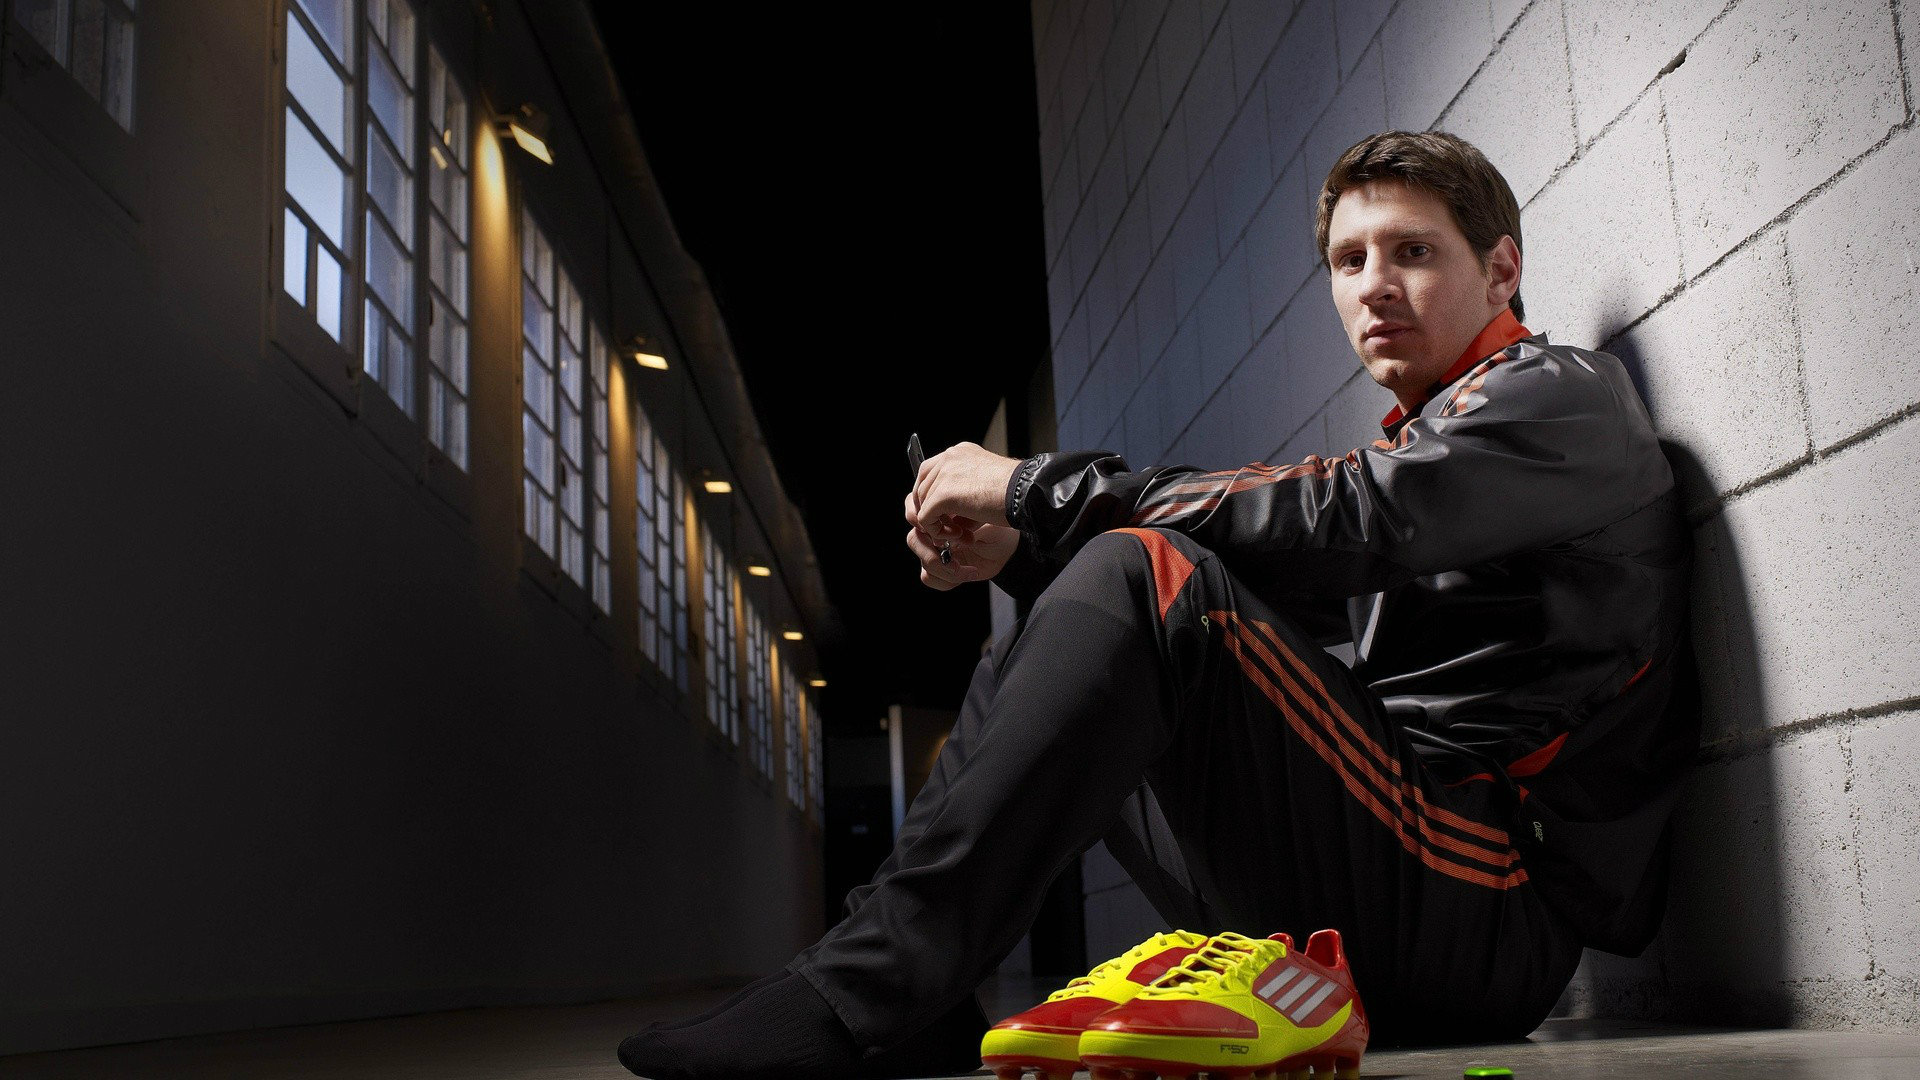 Lionel Messi Latest HD Wallpaper 2016 HD Wallpapers 1920x1080